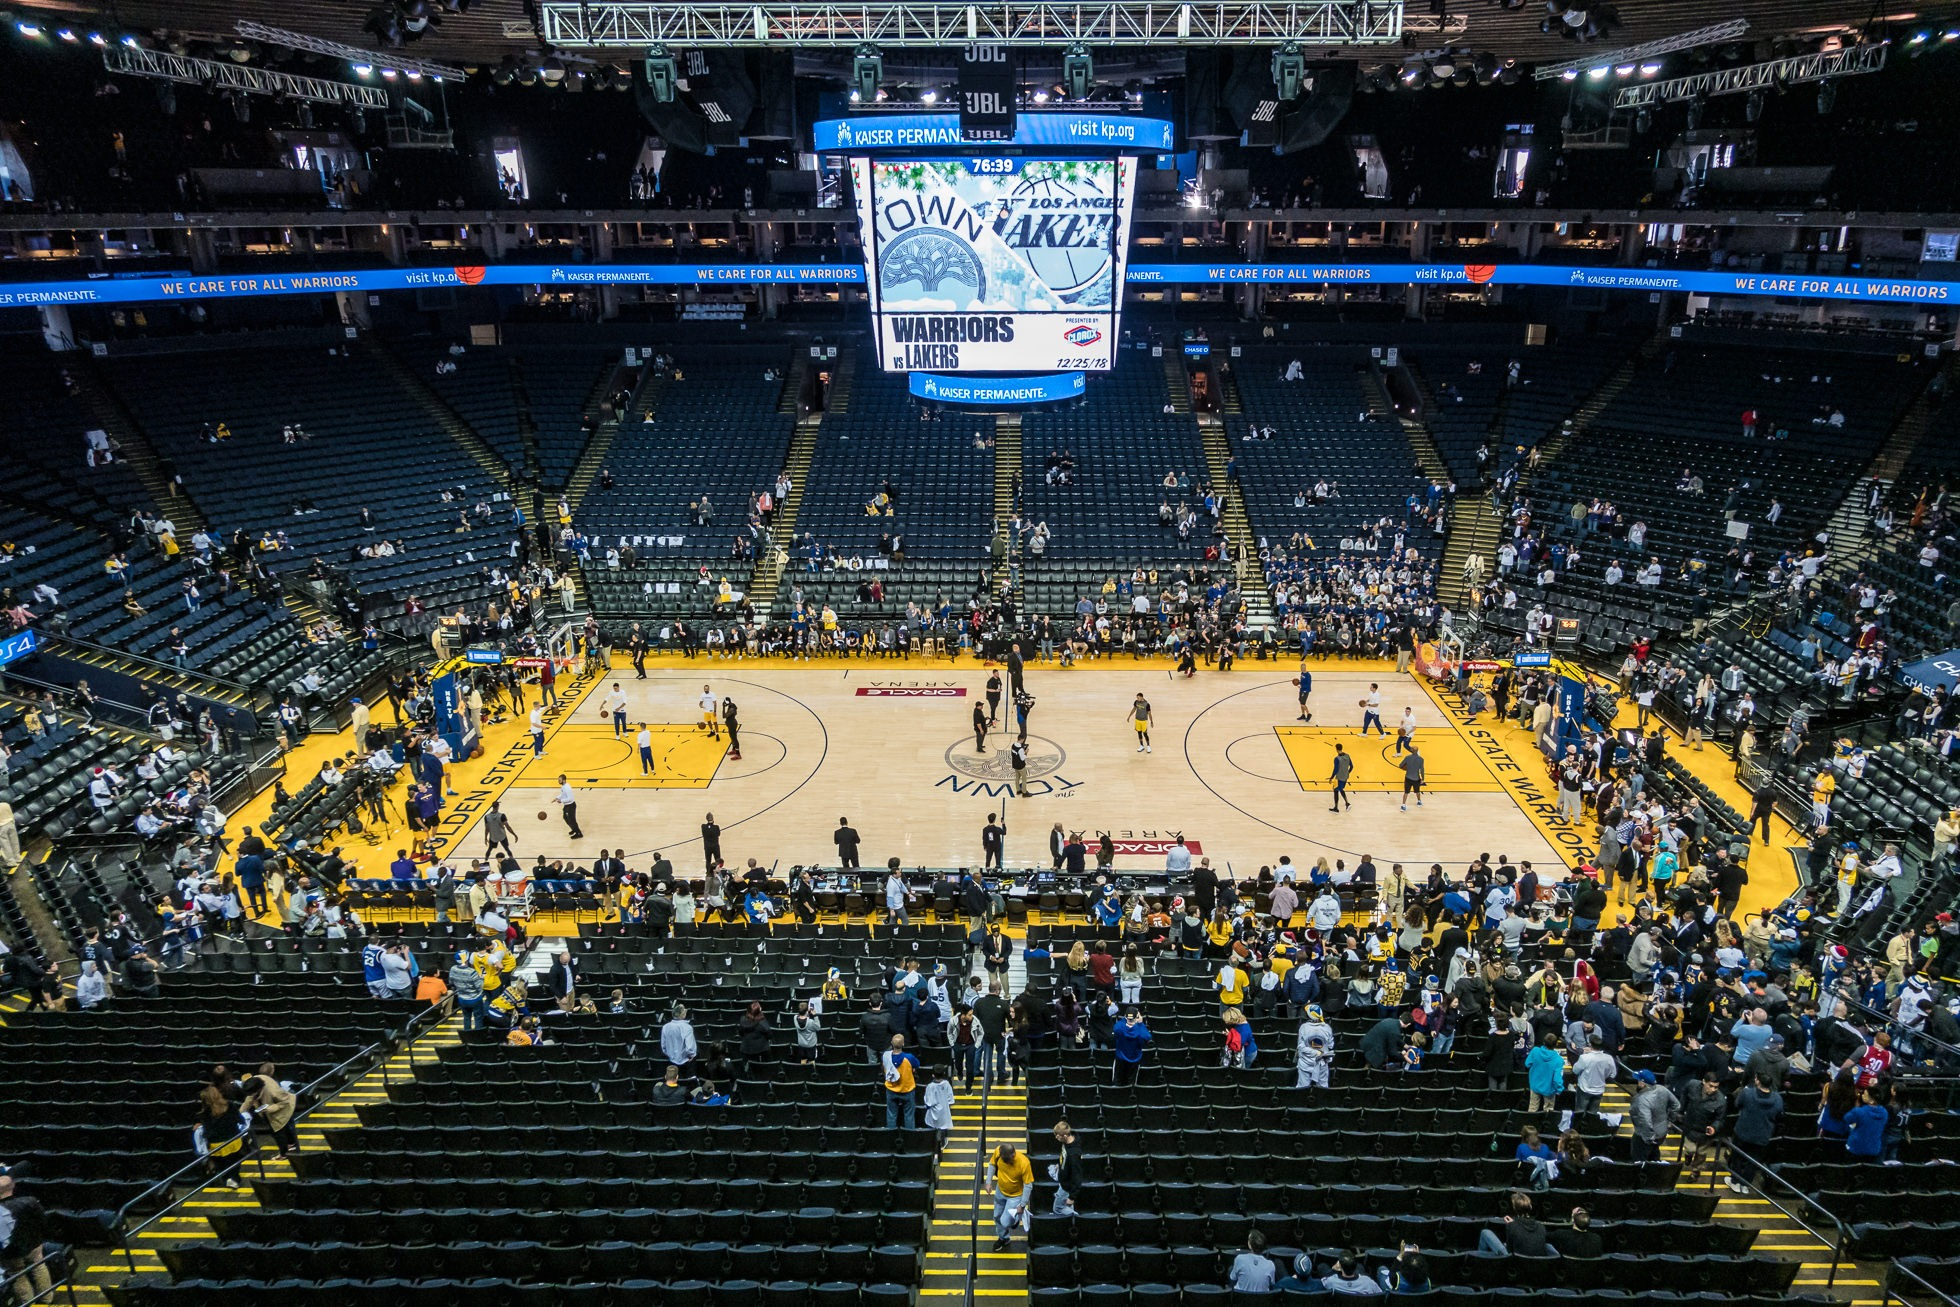 golden state warriors vs los angeles lakers game